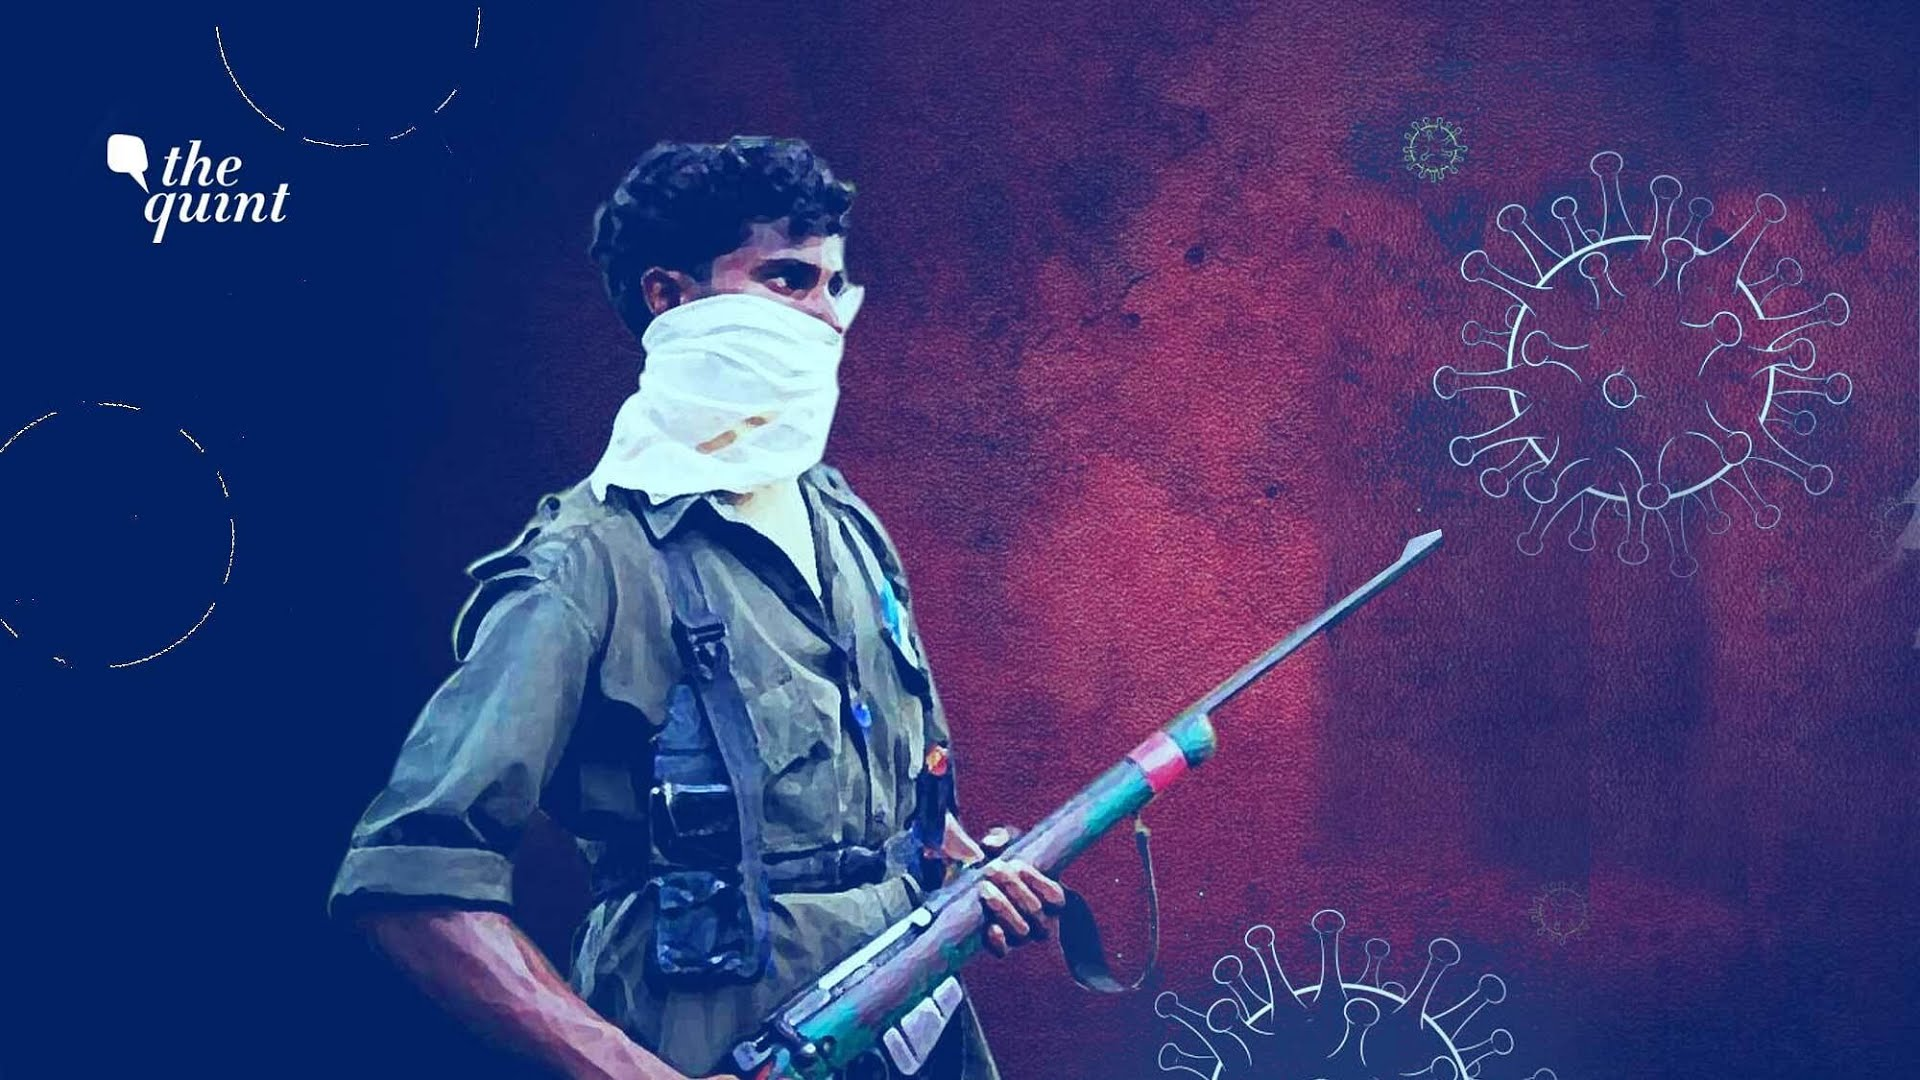 The coronavirus infection has now spread its tentacles in the outskirts of Chhattisgarh, including the Maoist strongholds. Image used for representation purpose.